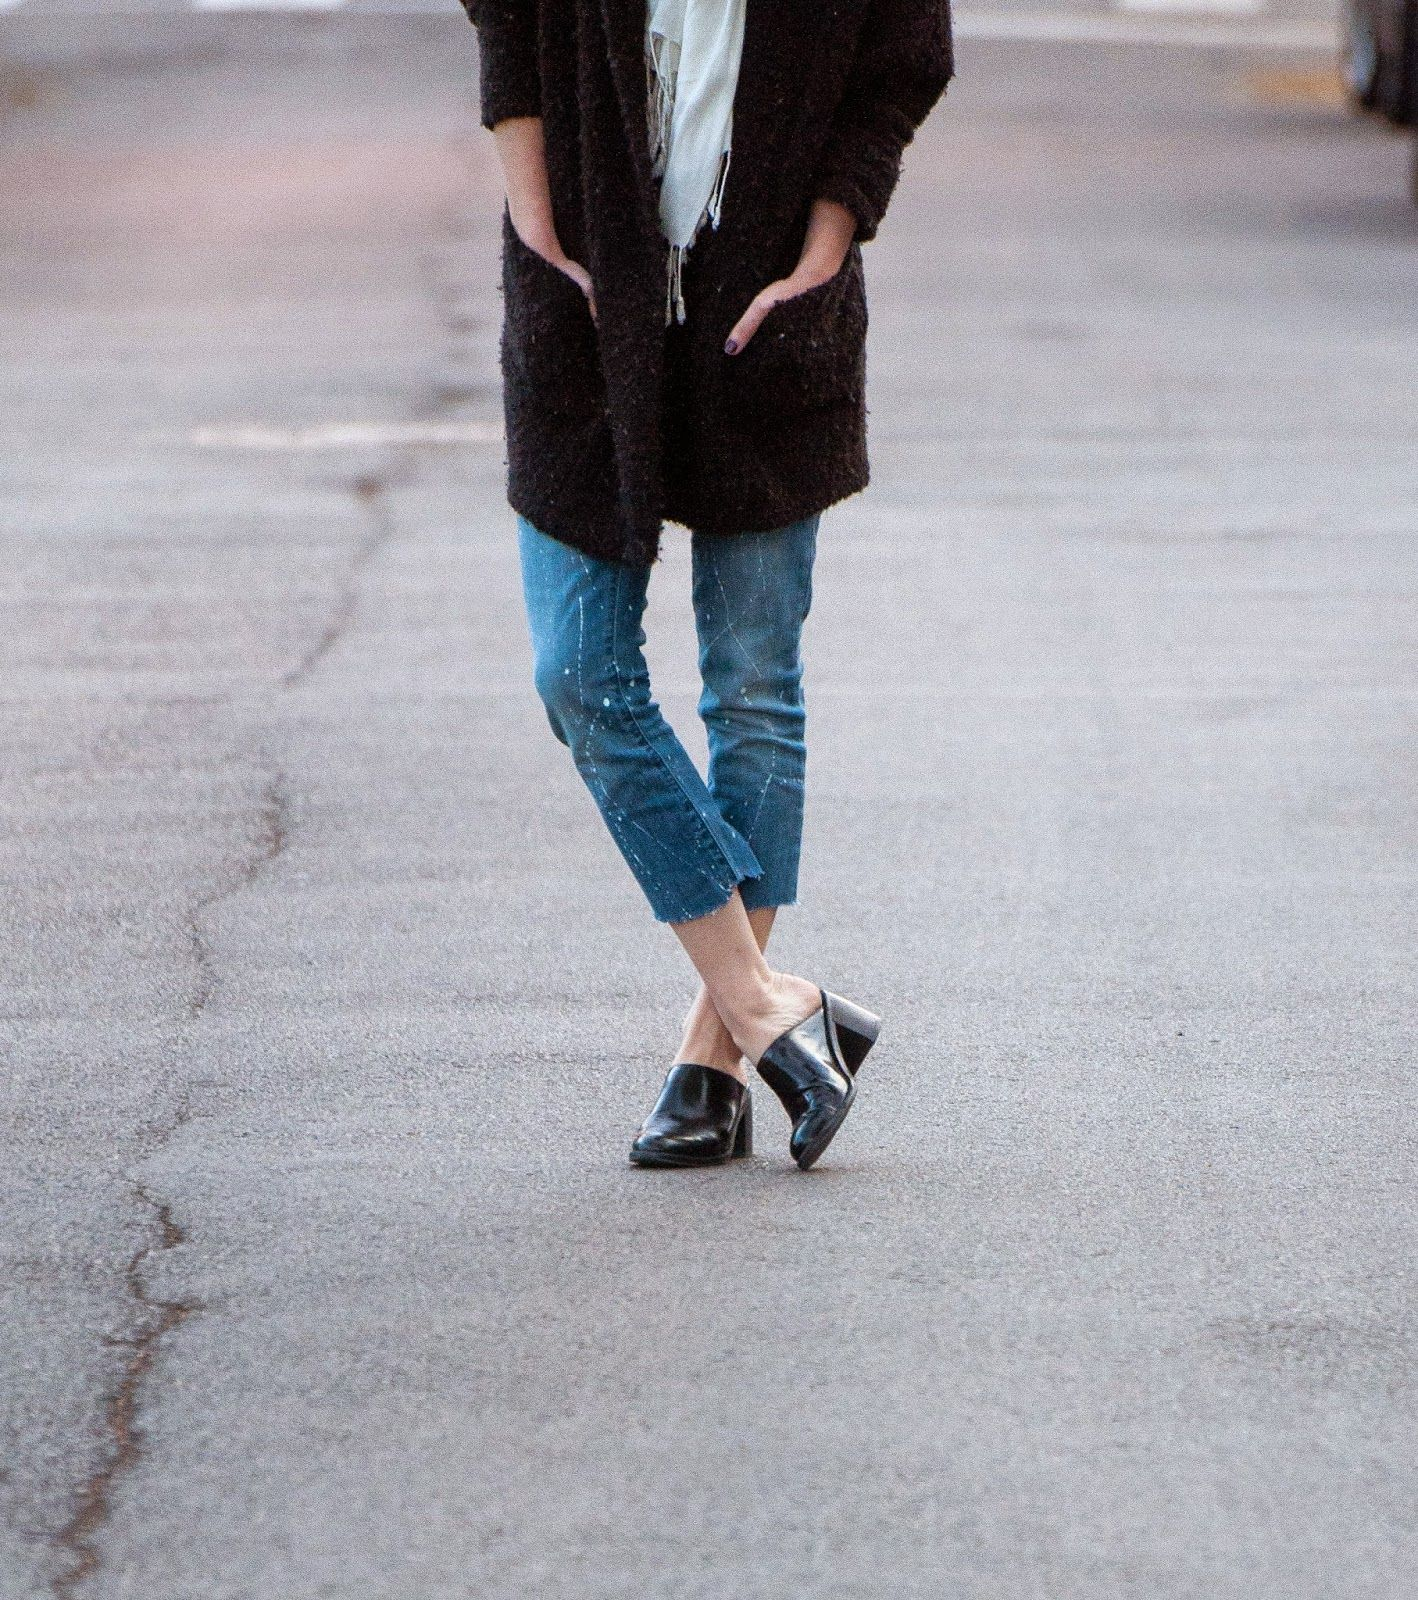 Rambles & Roses: Saturday Sweater #croppedjeans #loafers #topknot